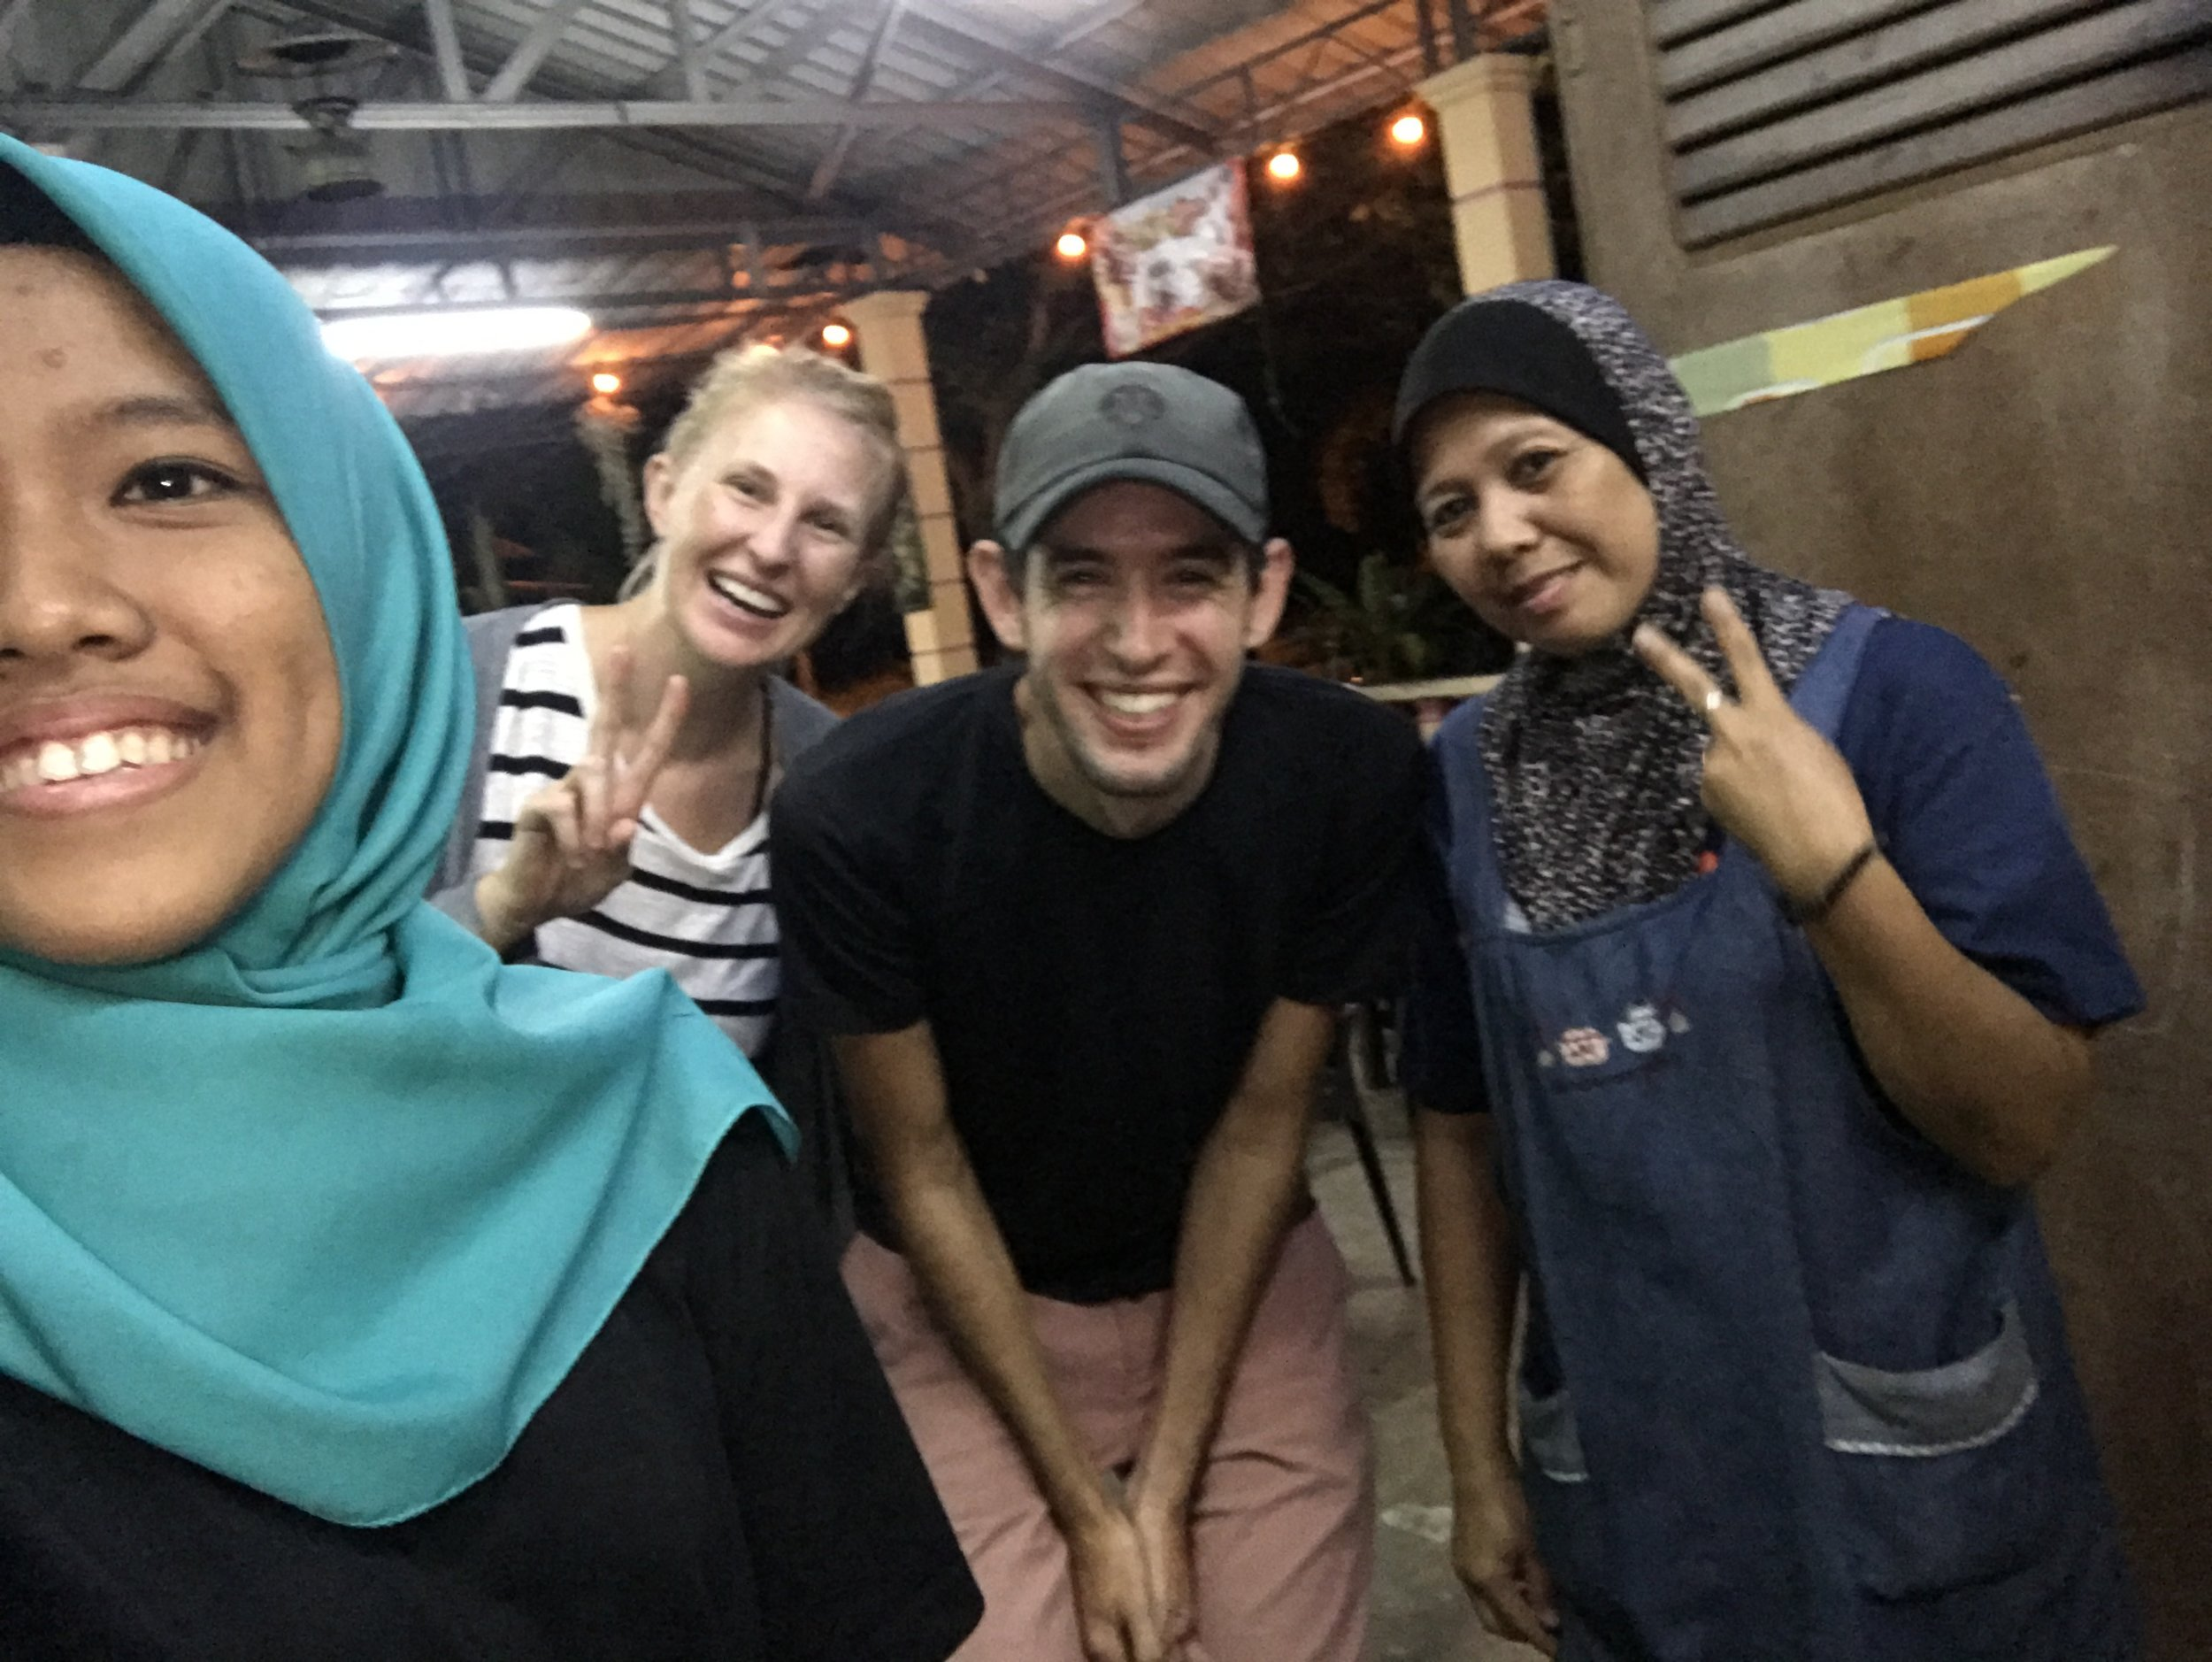 """This is the family that made the fish curry pictured below. They hardly spoke any english, but after we were done eating the daughter (on the left) said """"selfie?"""""""